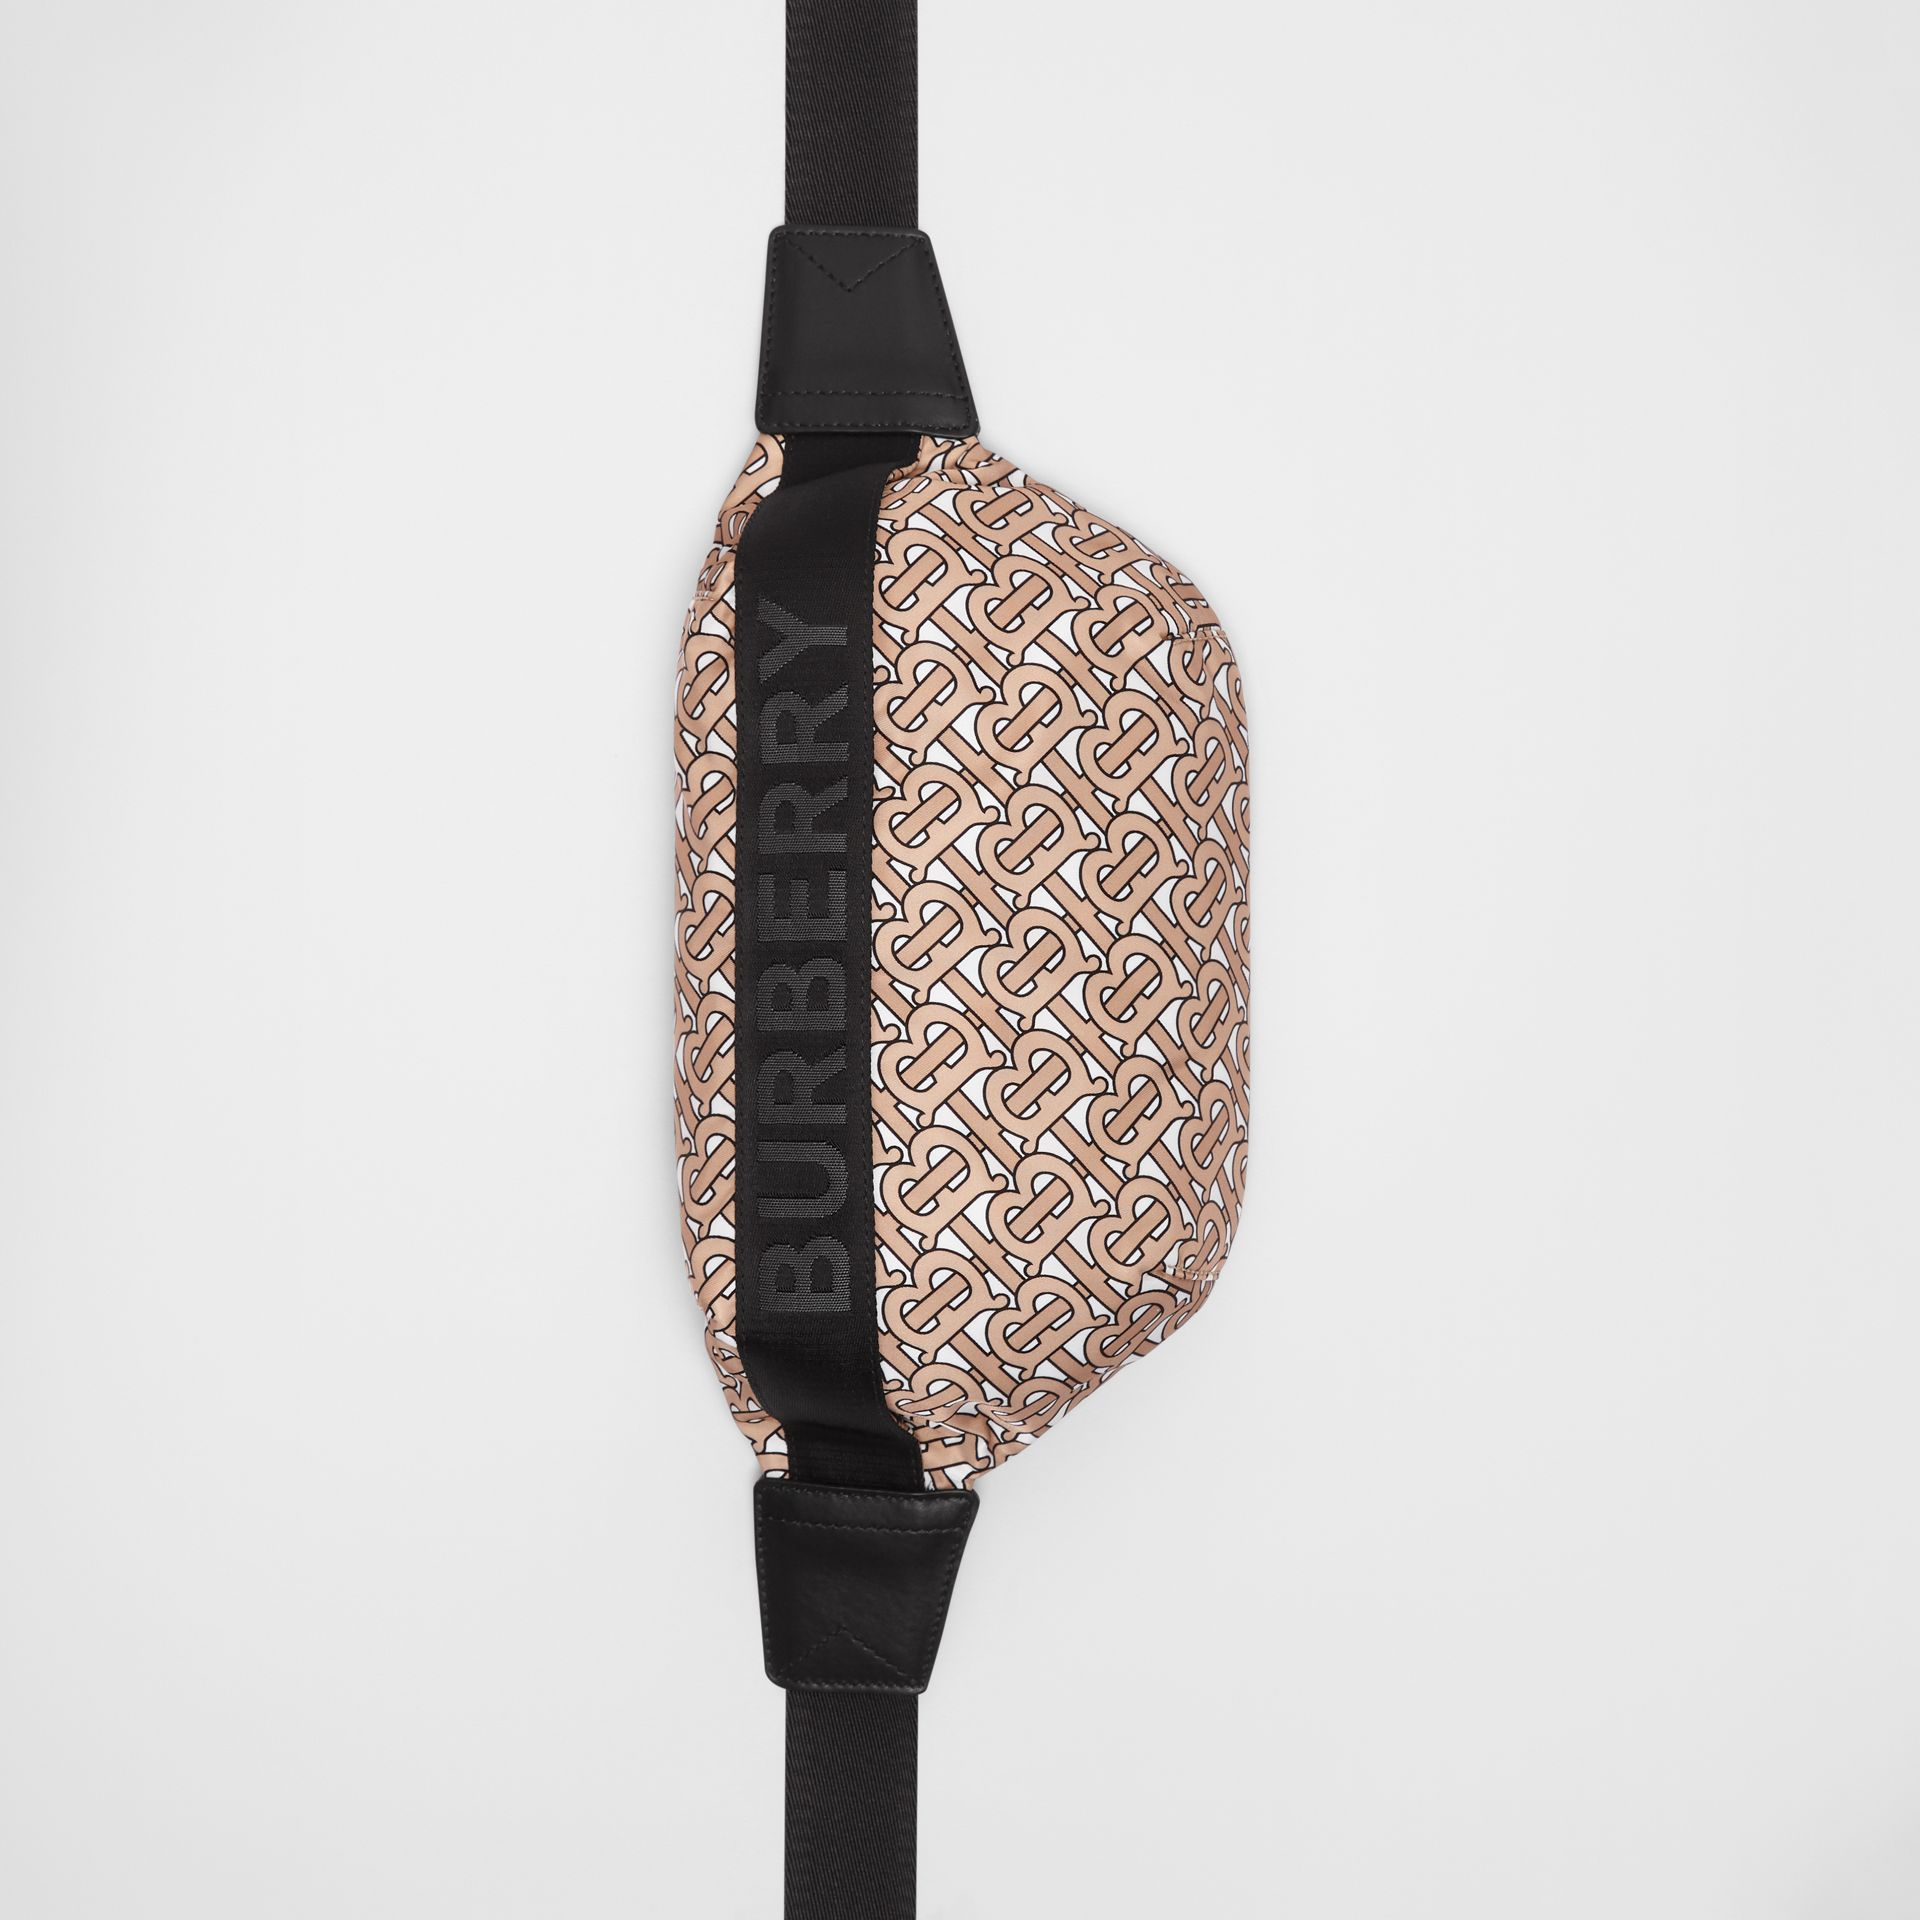 Medium Monogram Print Bum Bag in Beige | Burberry Australia - gallery image 4